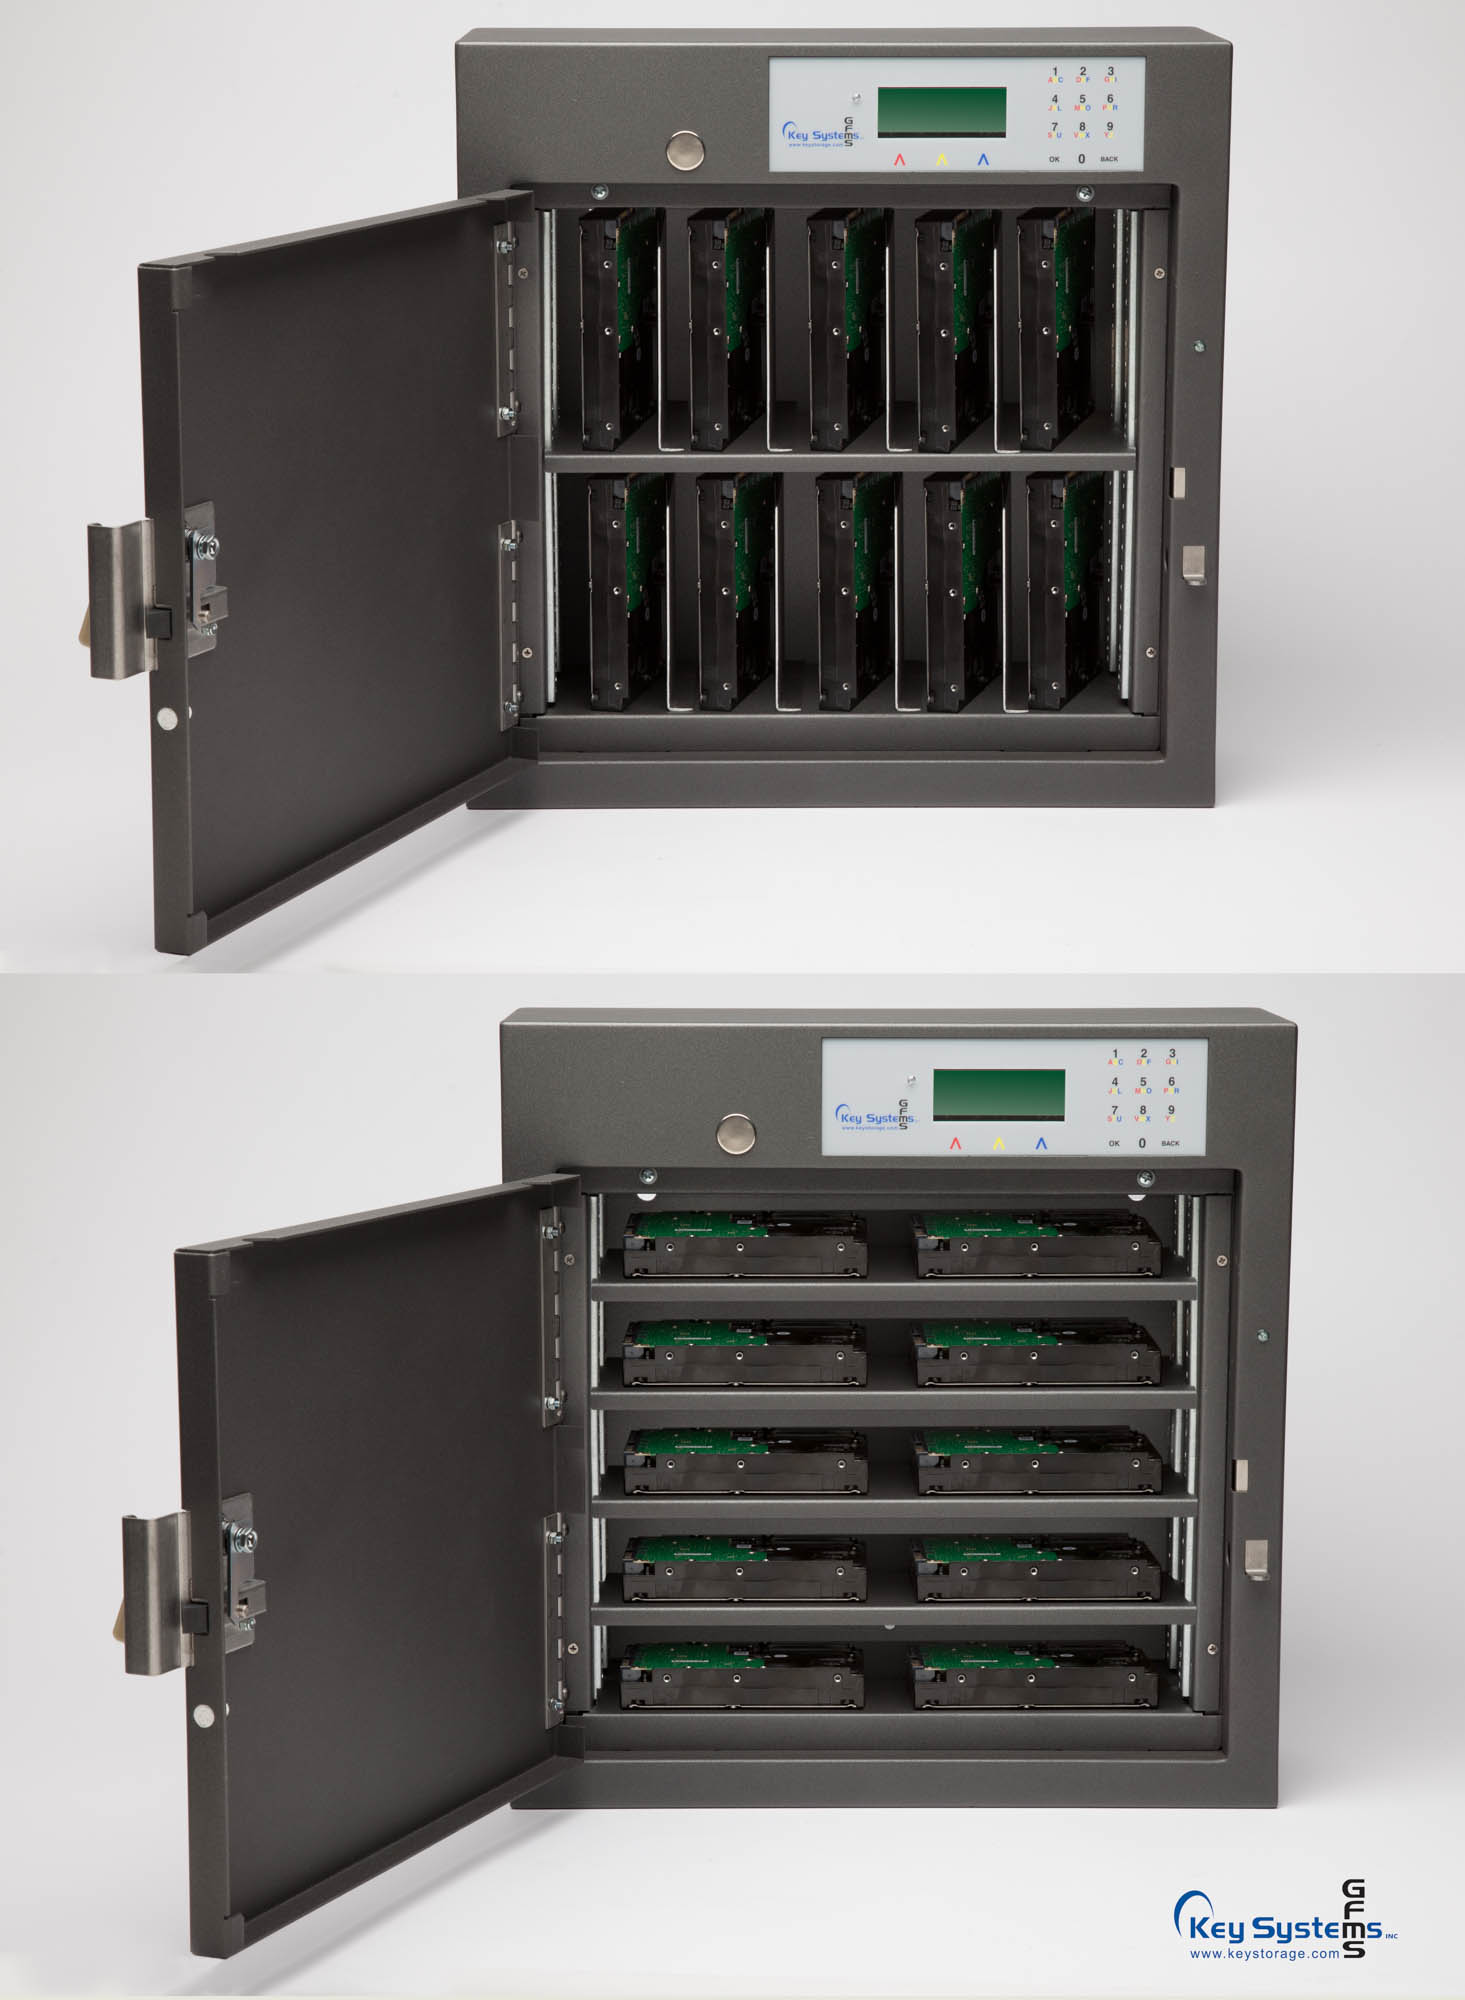 16 SAM Hard Drive Storage